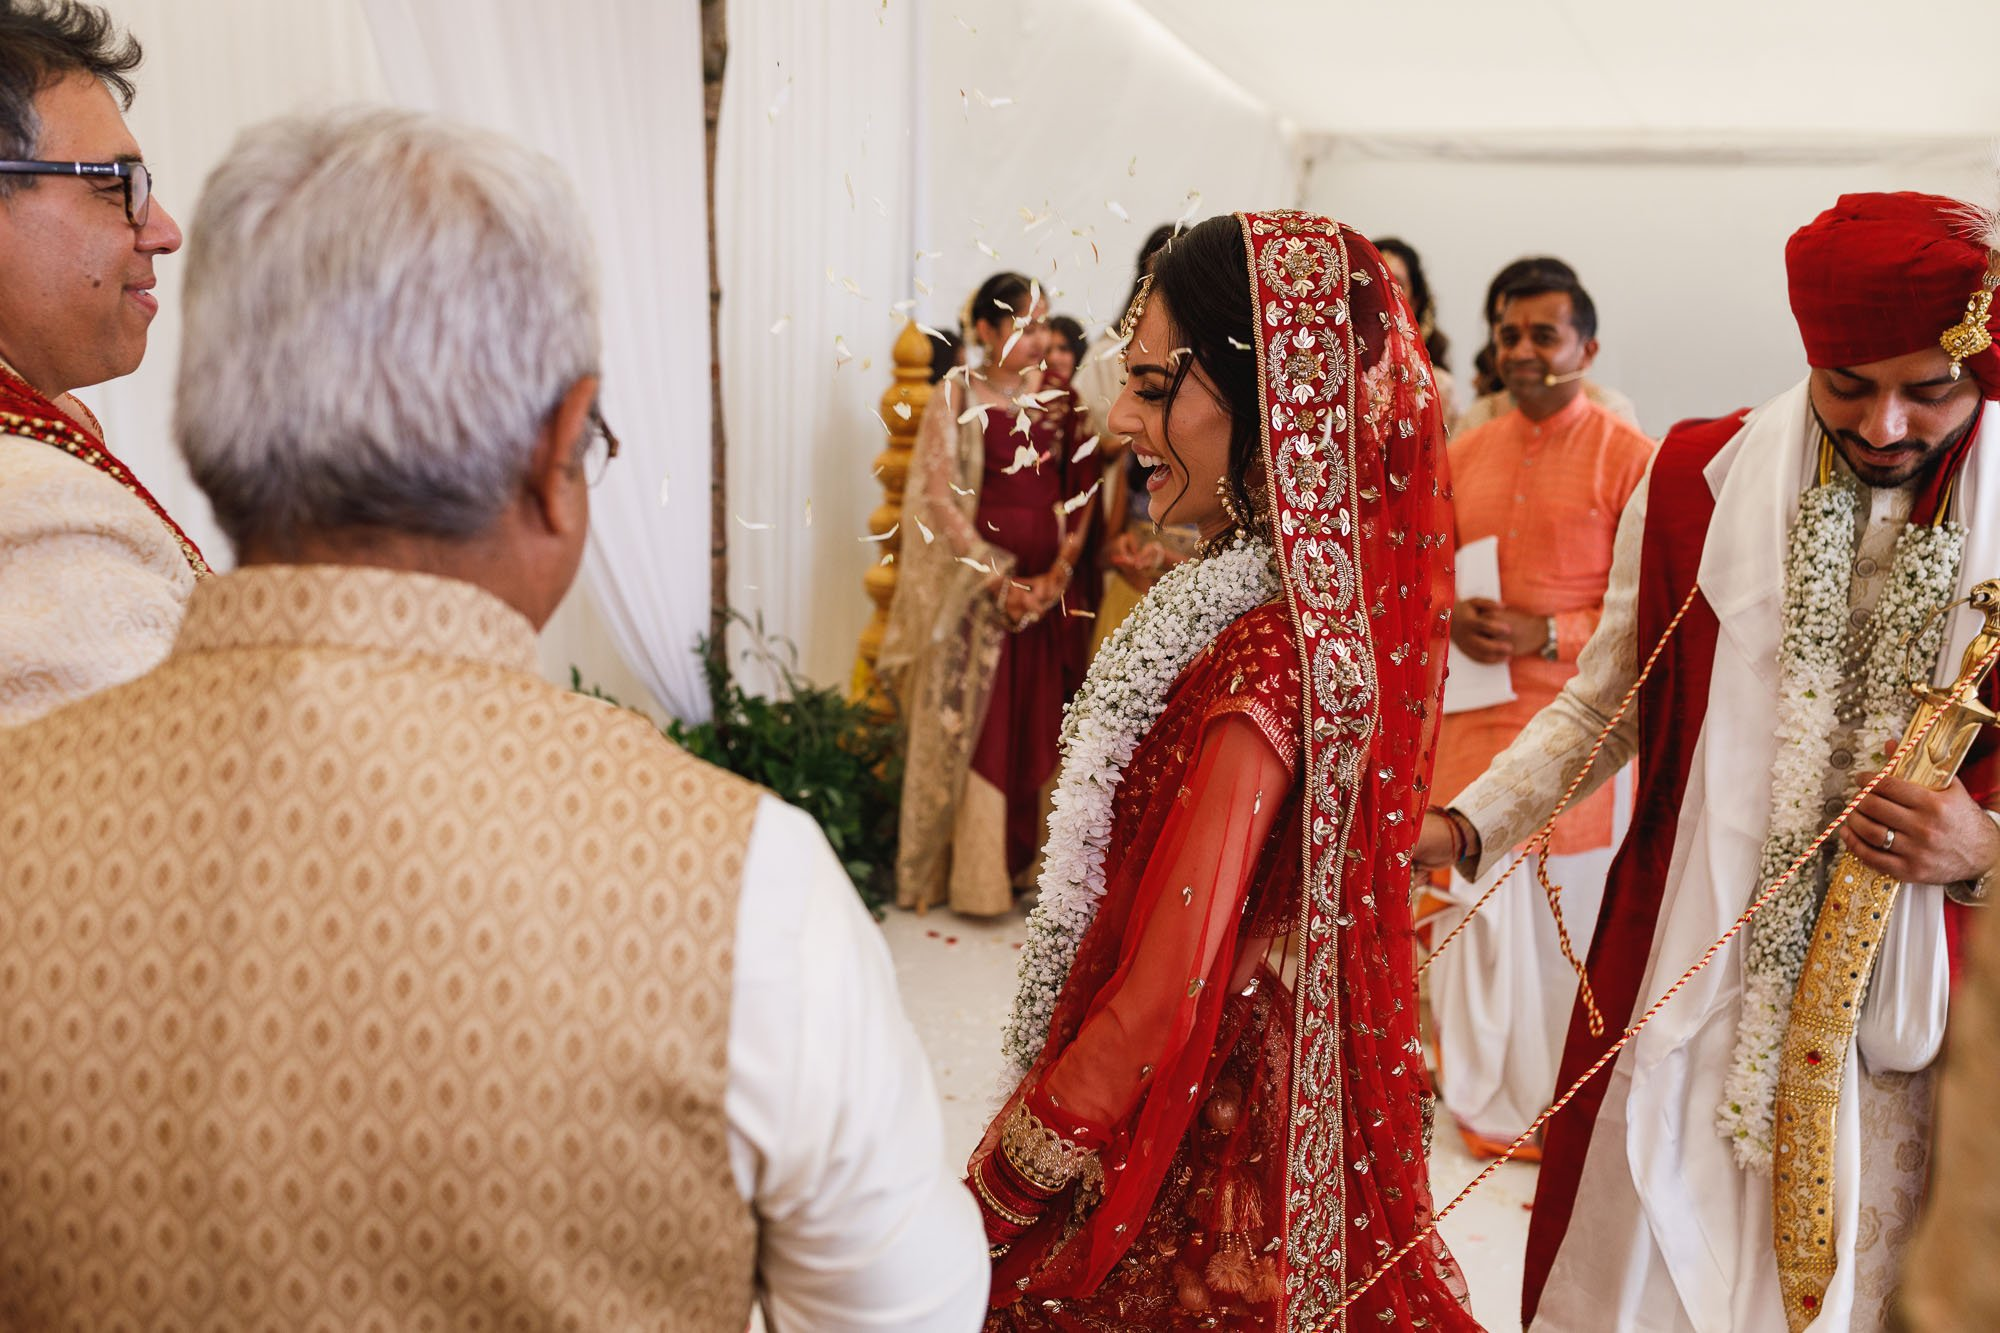 Heythrop Park Hotel, Oxfordshire, hindu wedding ceremony, Mangal Fera